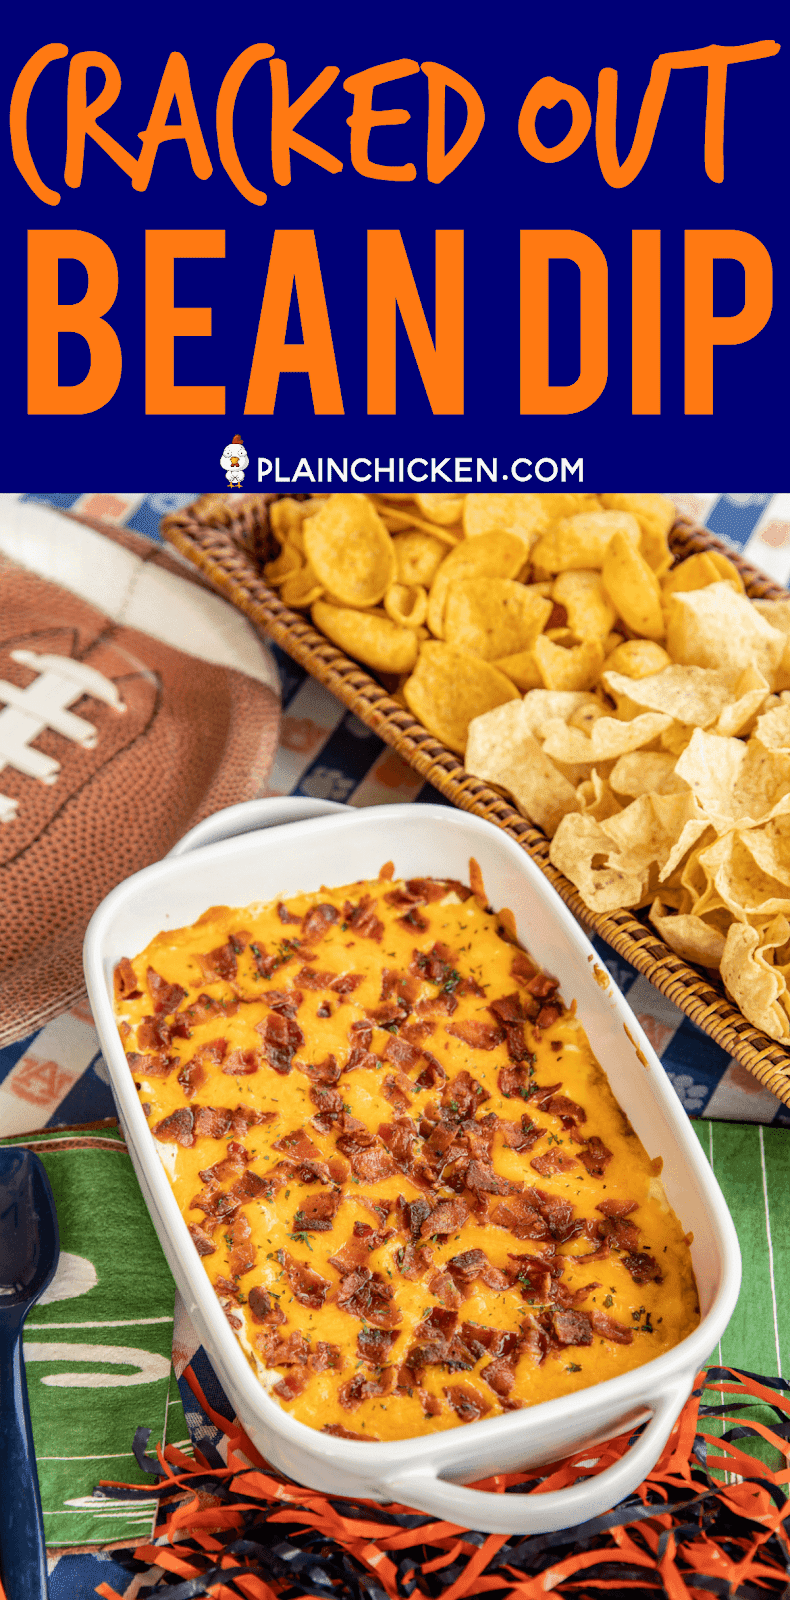 Cracked Out Bean Dip - SO addictive! Bean dip loaded with cheddar bacon and ranch. I could NOT stop eating this yummy dip. The flavors are amazing! Refried beans, taco seasoning, sour cream, ranch, bacon and cheddar cheese. Can make ahead of time and refrigerate until ready to bake. Serve with fritos and tortilla chips. This dip is always the first thing to go at our tailgates! I never have any leftovers! YUM! #dip #beandip #tailgating #appetizer #partyfood